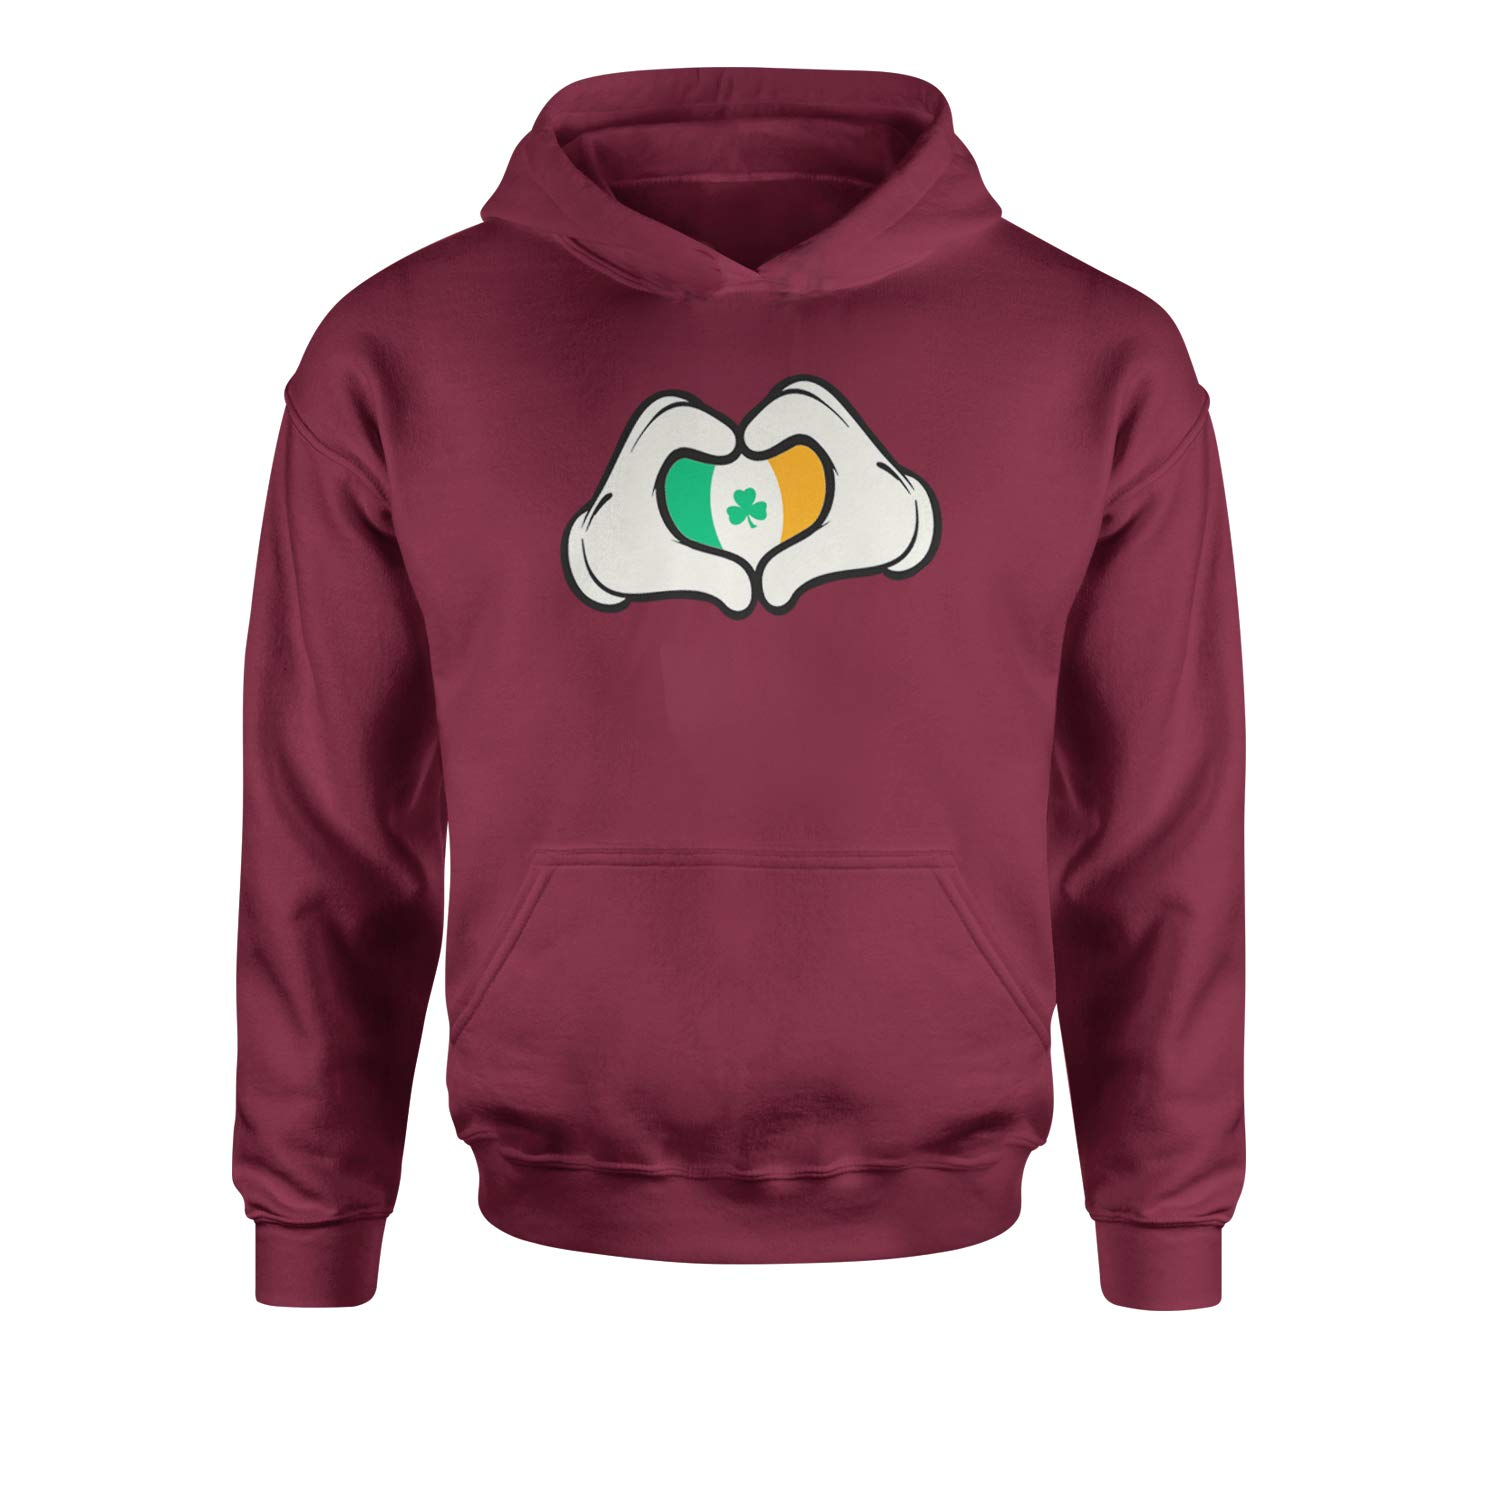 Expression Tees Ireland Flag Cartoon Hands Youth-Sized Hoodie